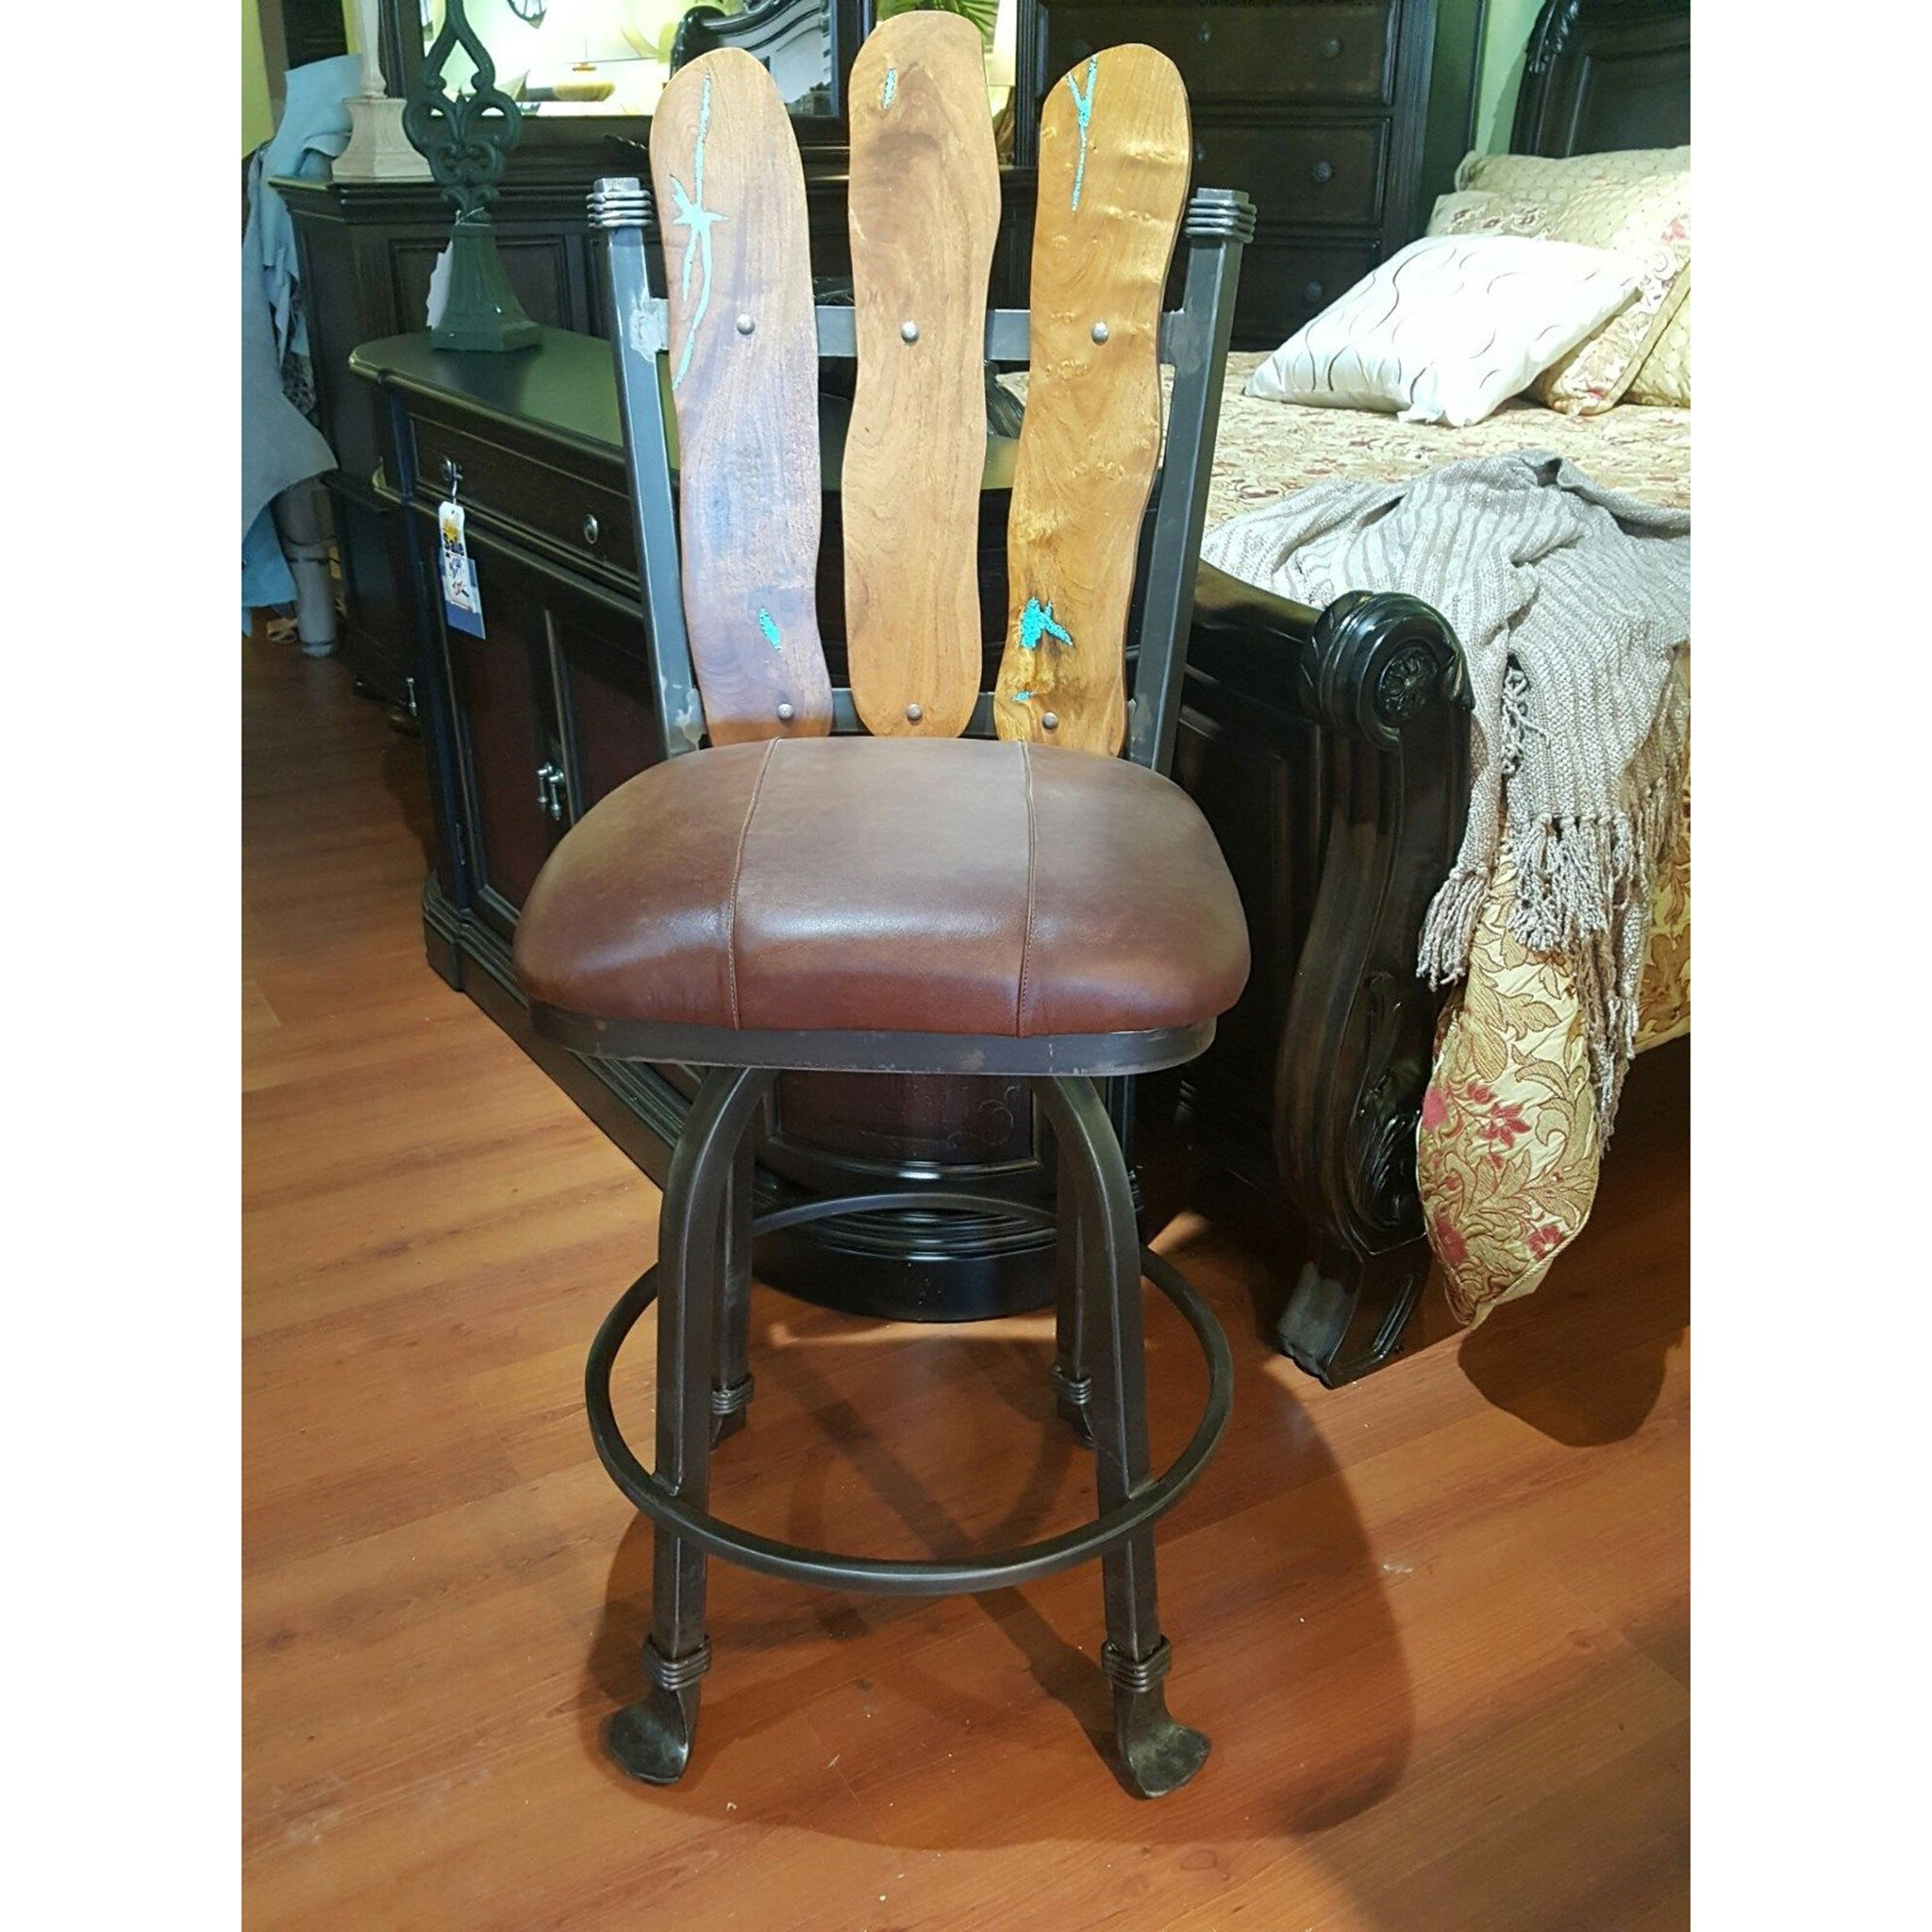 Wrought Iron Barstool Mesquite Wood with Inlaid Turquoise Rustic Set of 2 - Furniture on Main